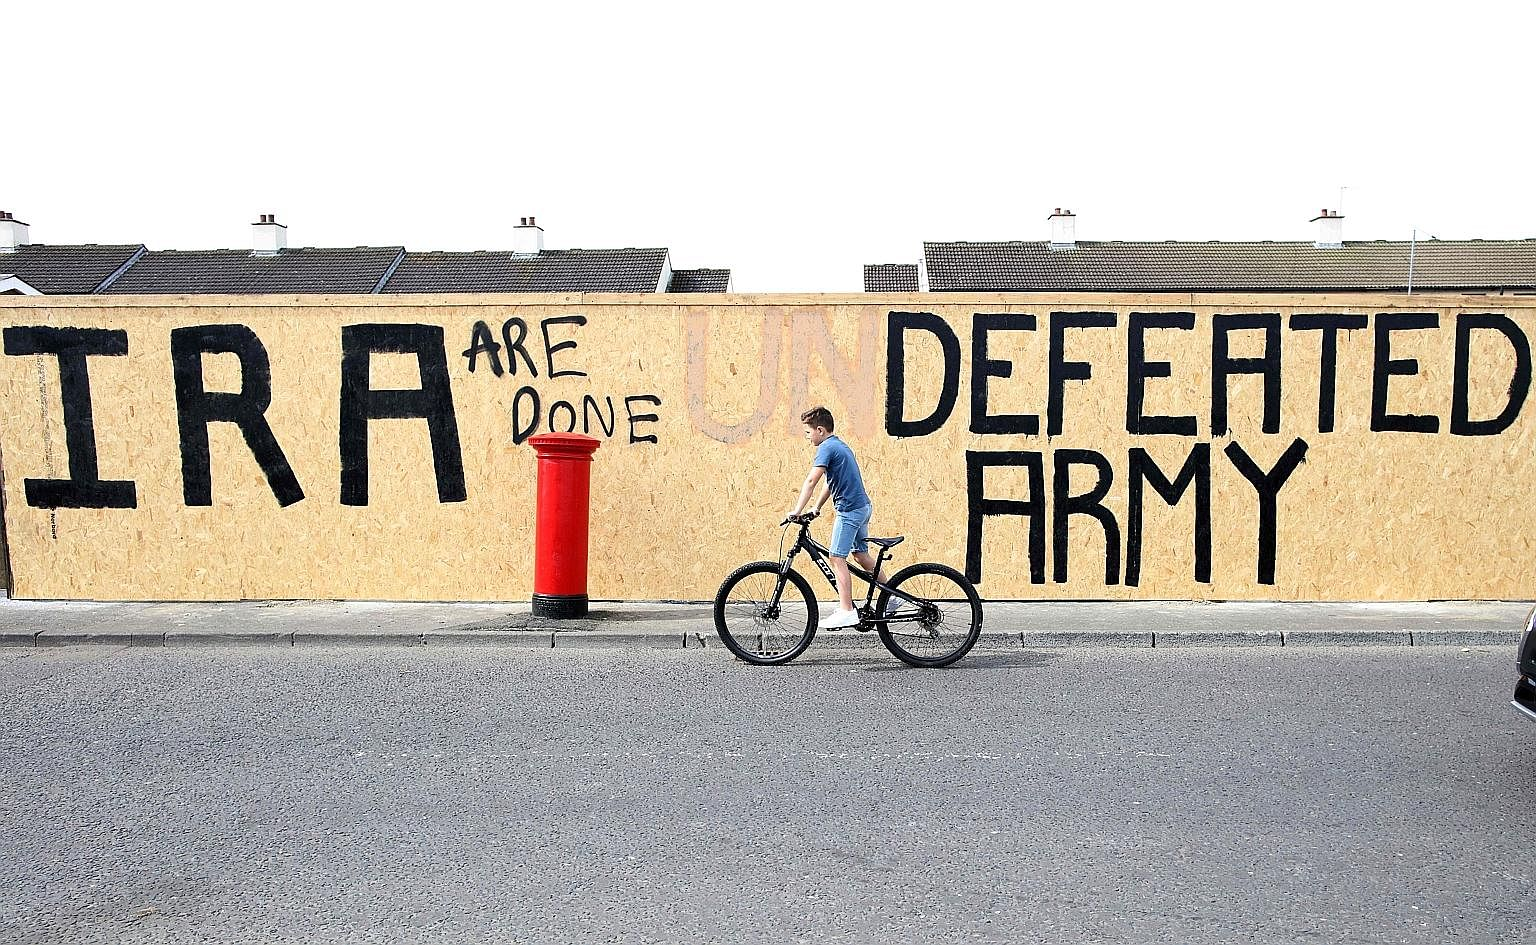 """Graffiti that has been amended to """"IRA are done. Defeated Army"""" instead of """"IRA undefeated Army"""" in Londonderry's Creggan area, near where Ms Lyra McKee was shot last week."""